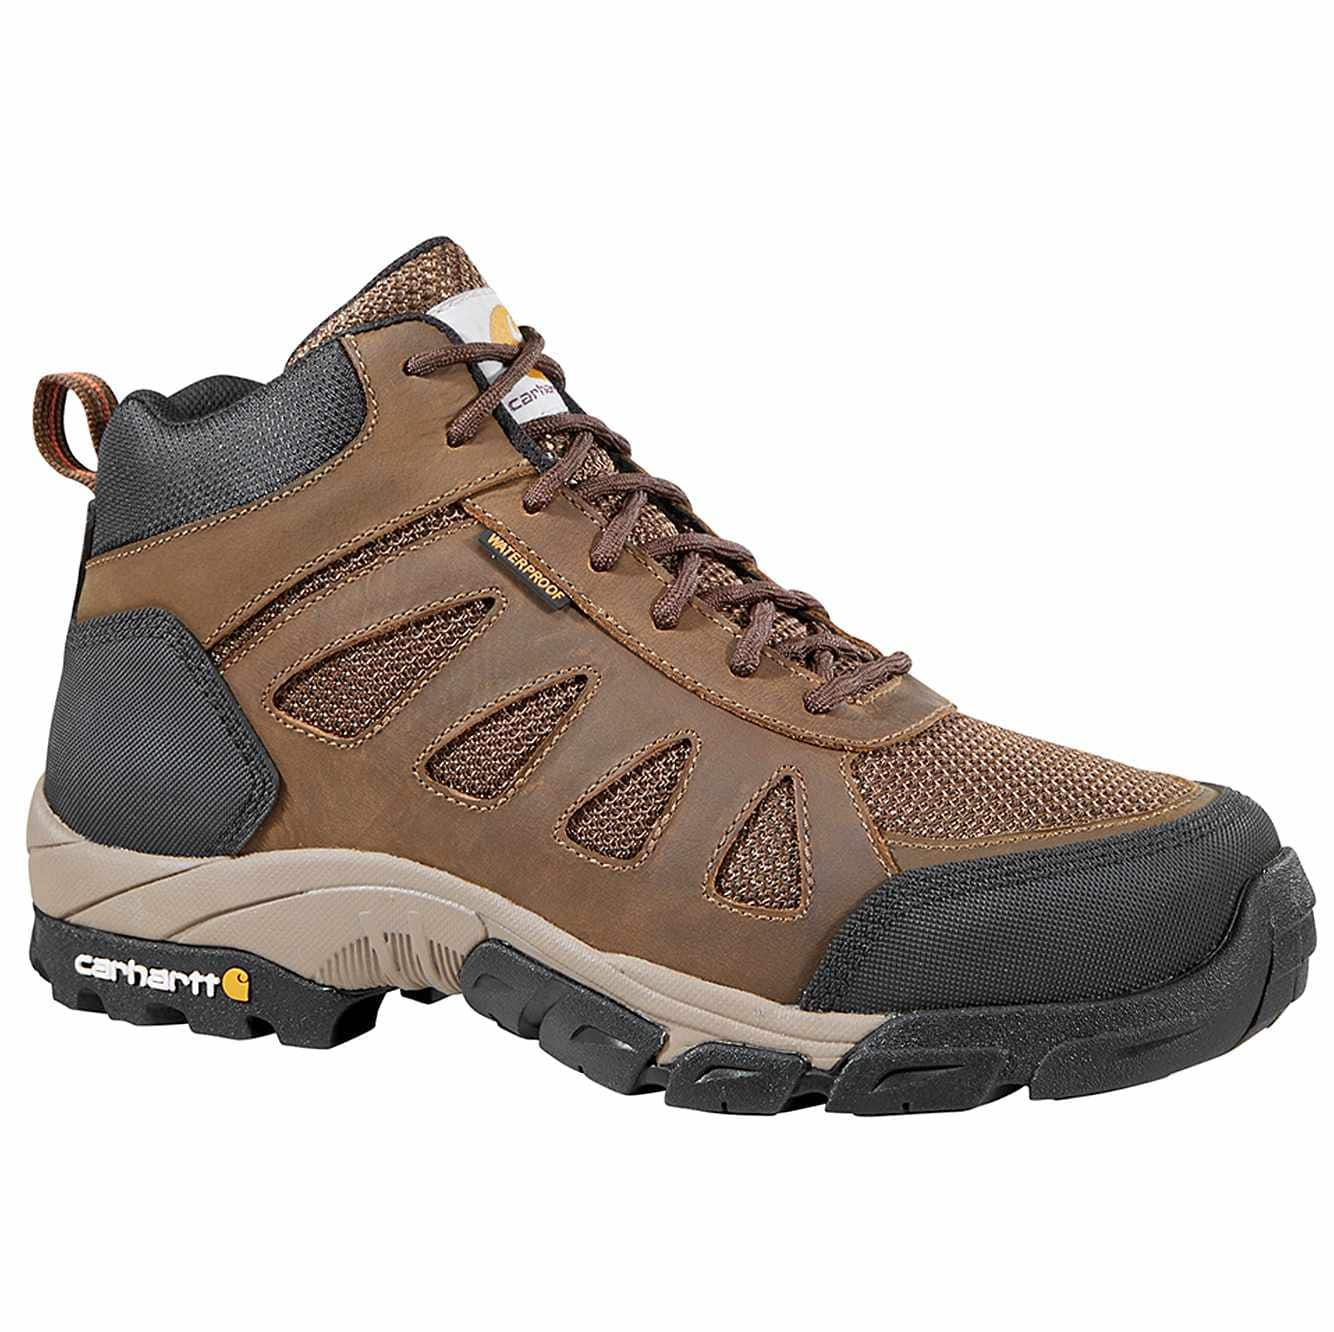 Picture of Lightweight Carbon Nano Toe Work Hiker in Brown Leather and Nylon